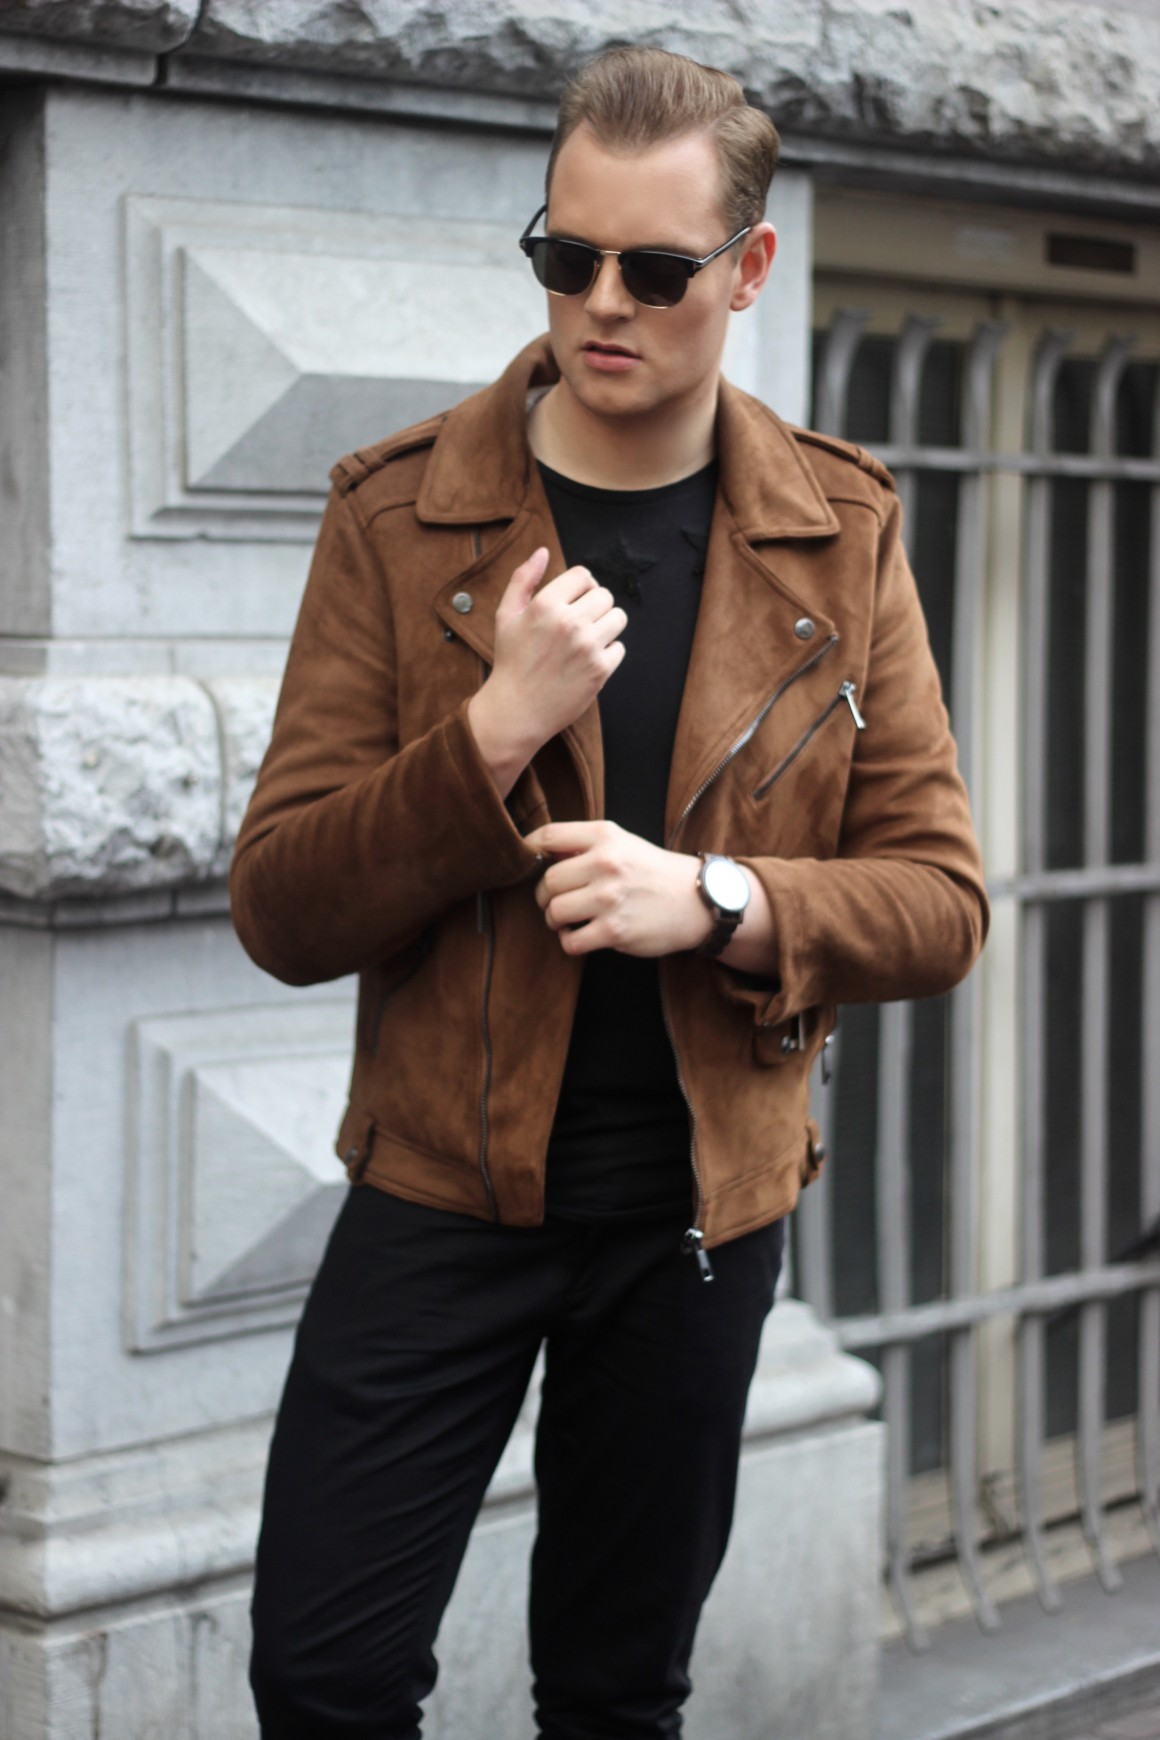 Suede Biker jacket men outfit JustKVN menswear and lifestyle blog